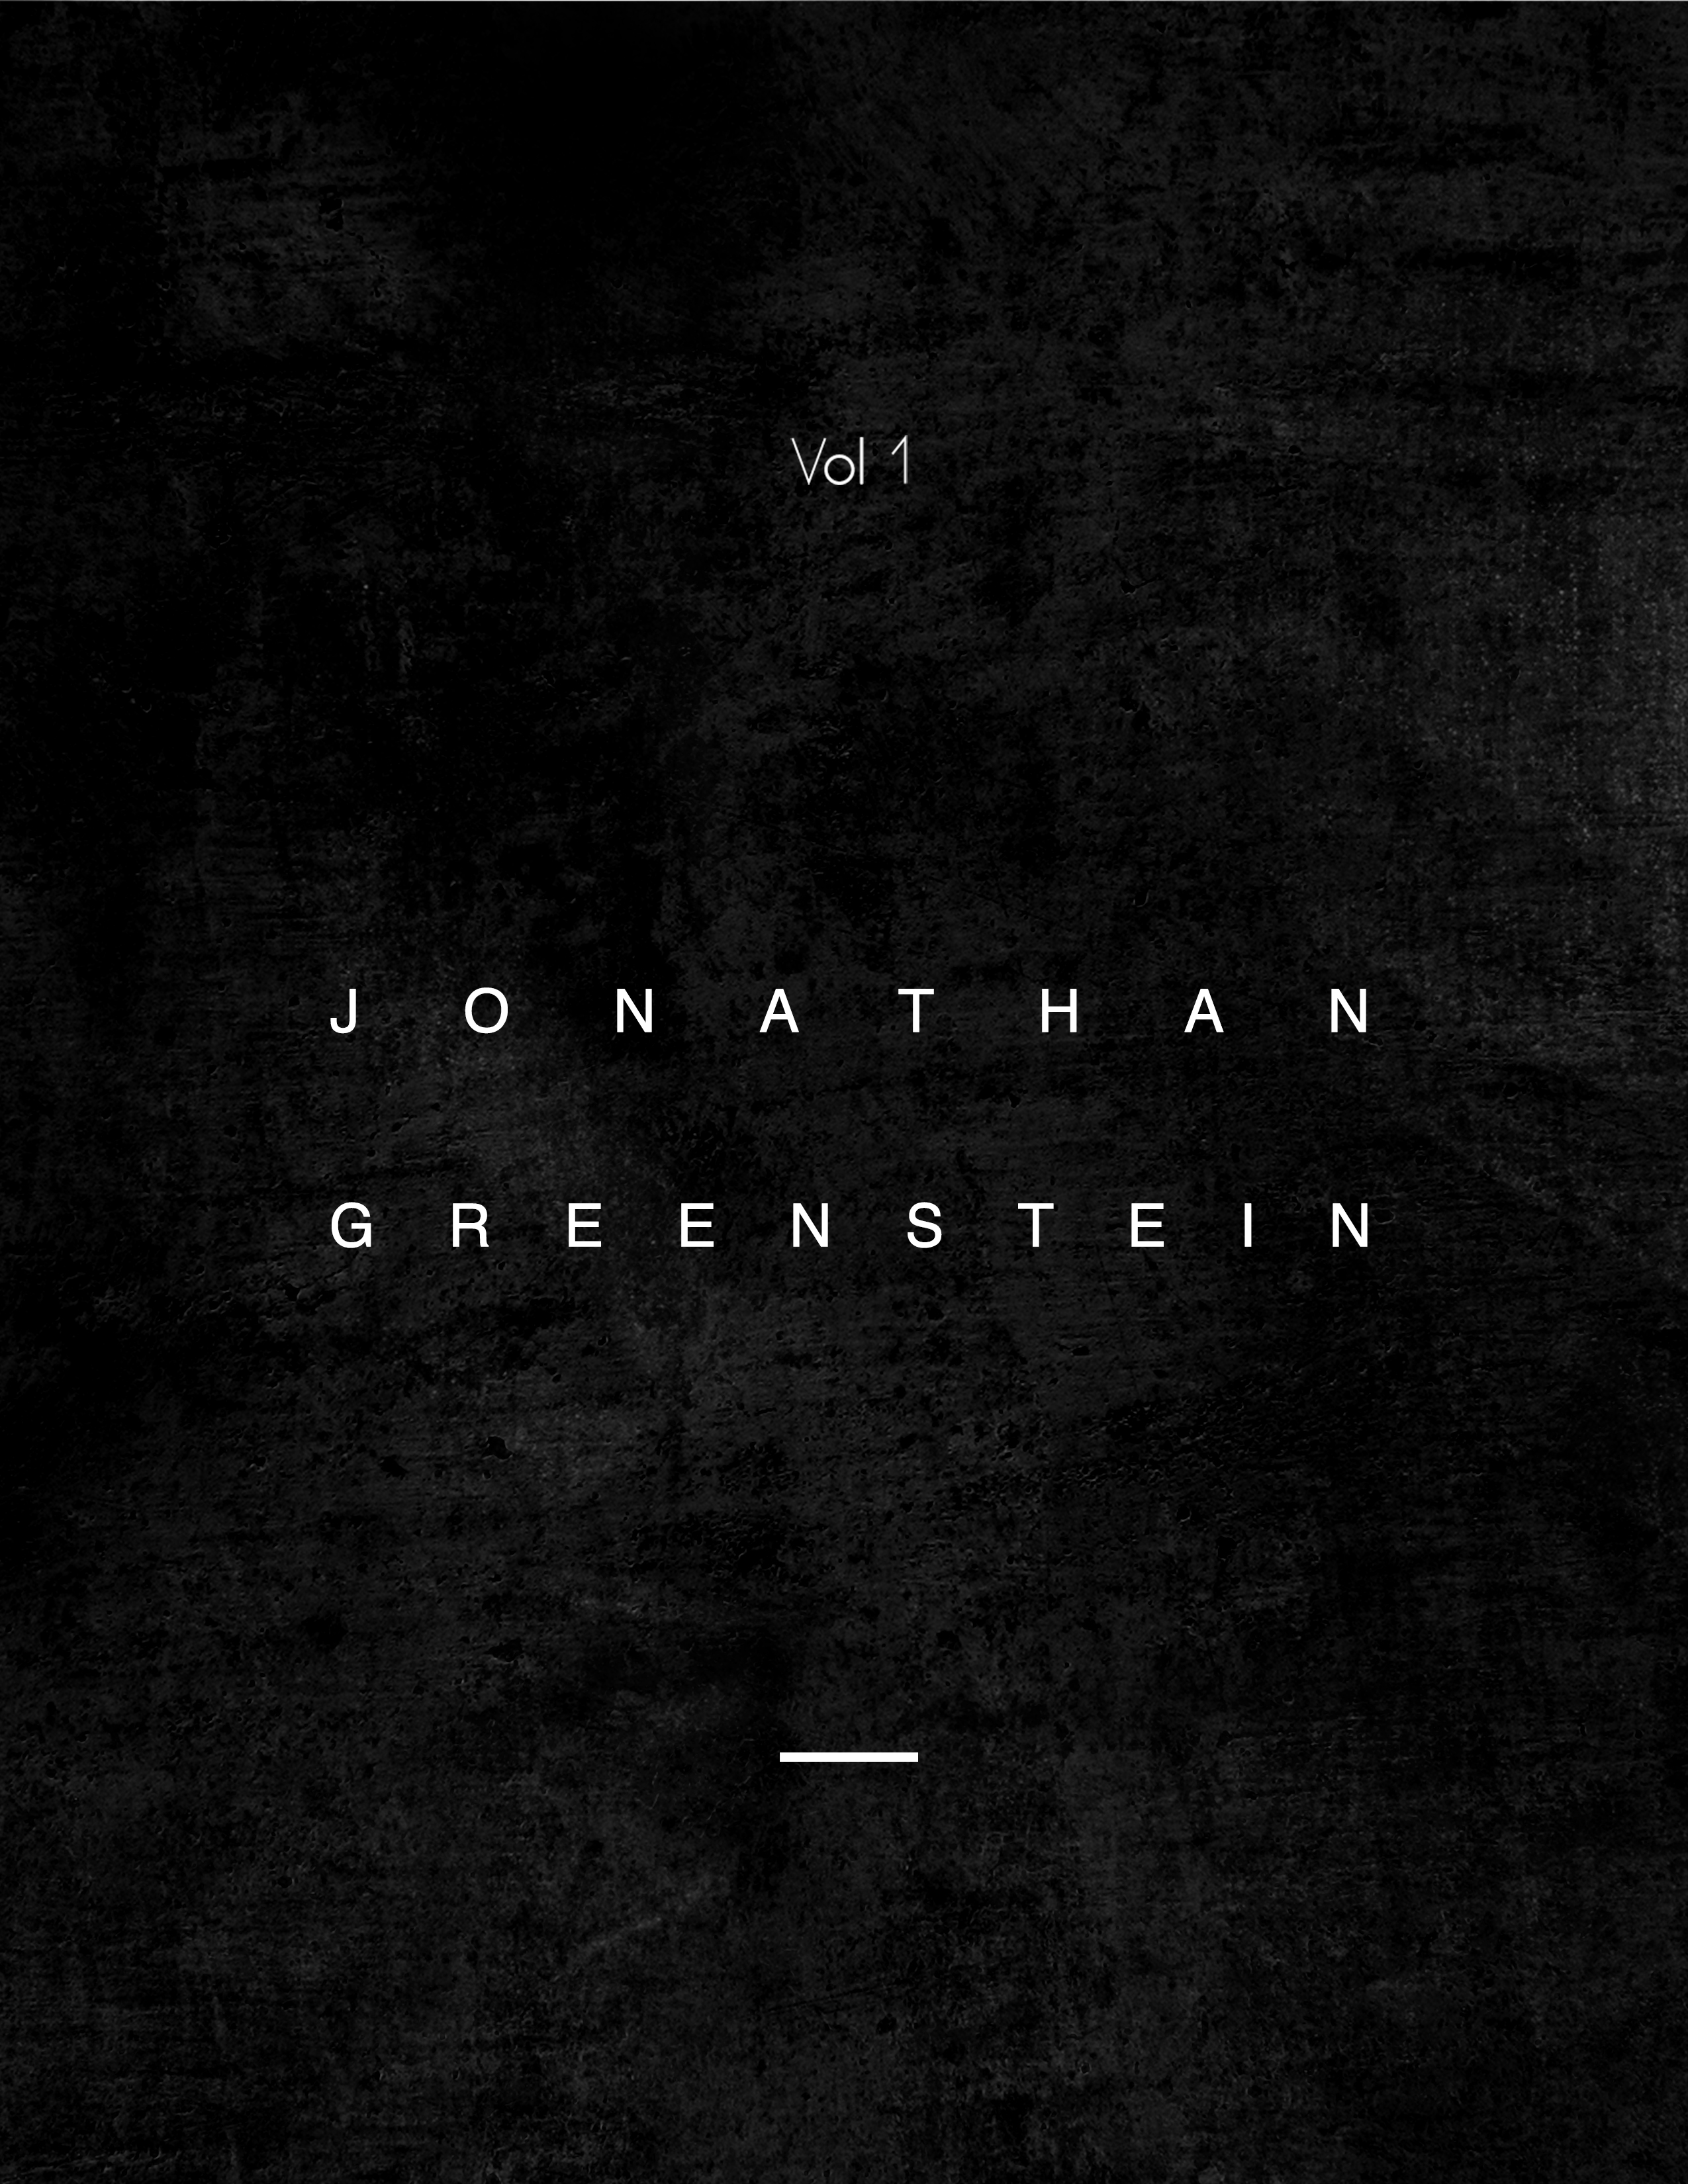 Jonathan Greenstein's Vol 1, featuring Gilad Hekselman gets ink in New York City Jazz Record